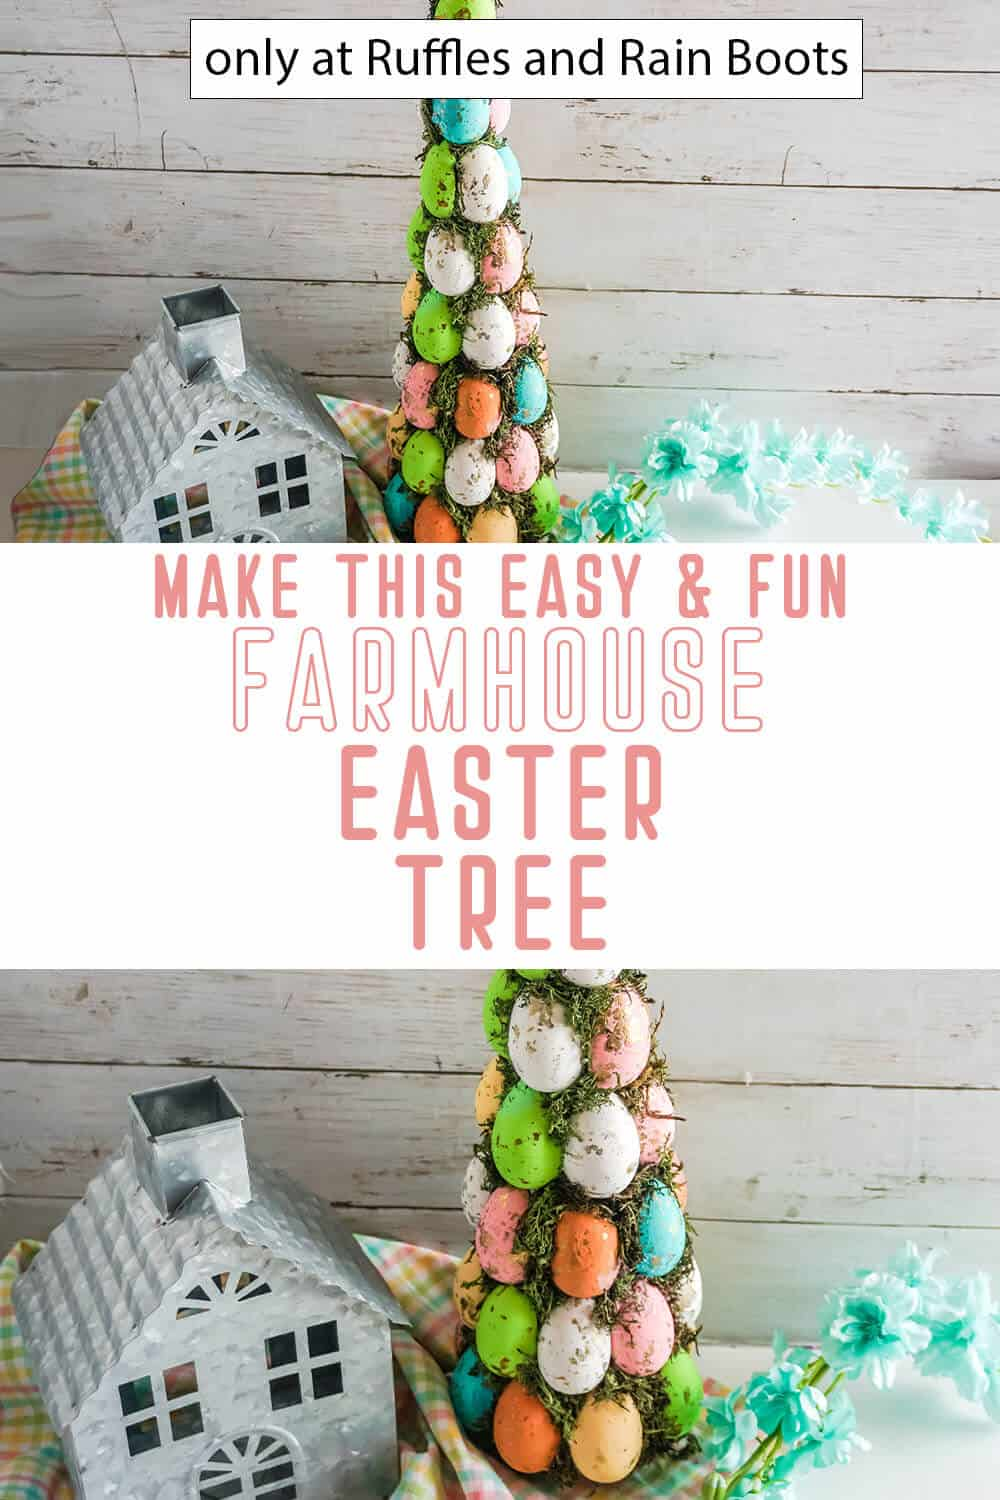 photo collage of farmhouse easter tree with easter eggs and moss with text which reads make this easy & fun farmhouse easter tree